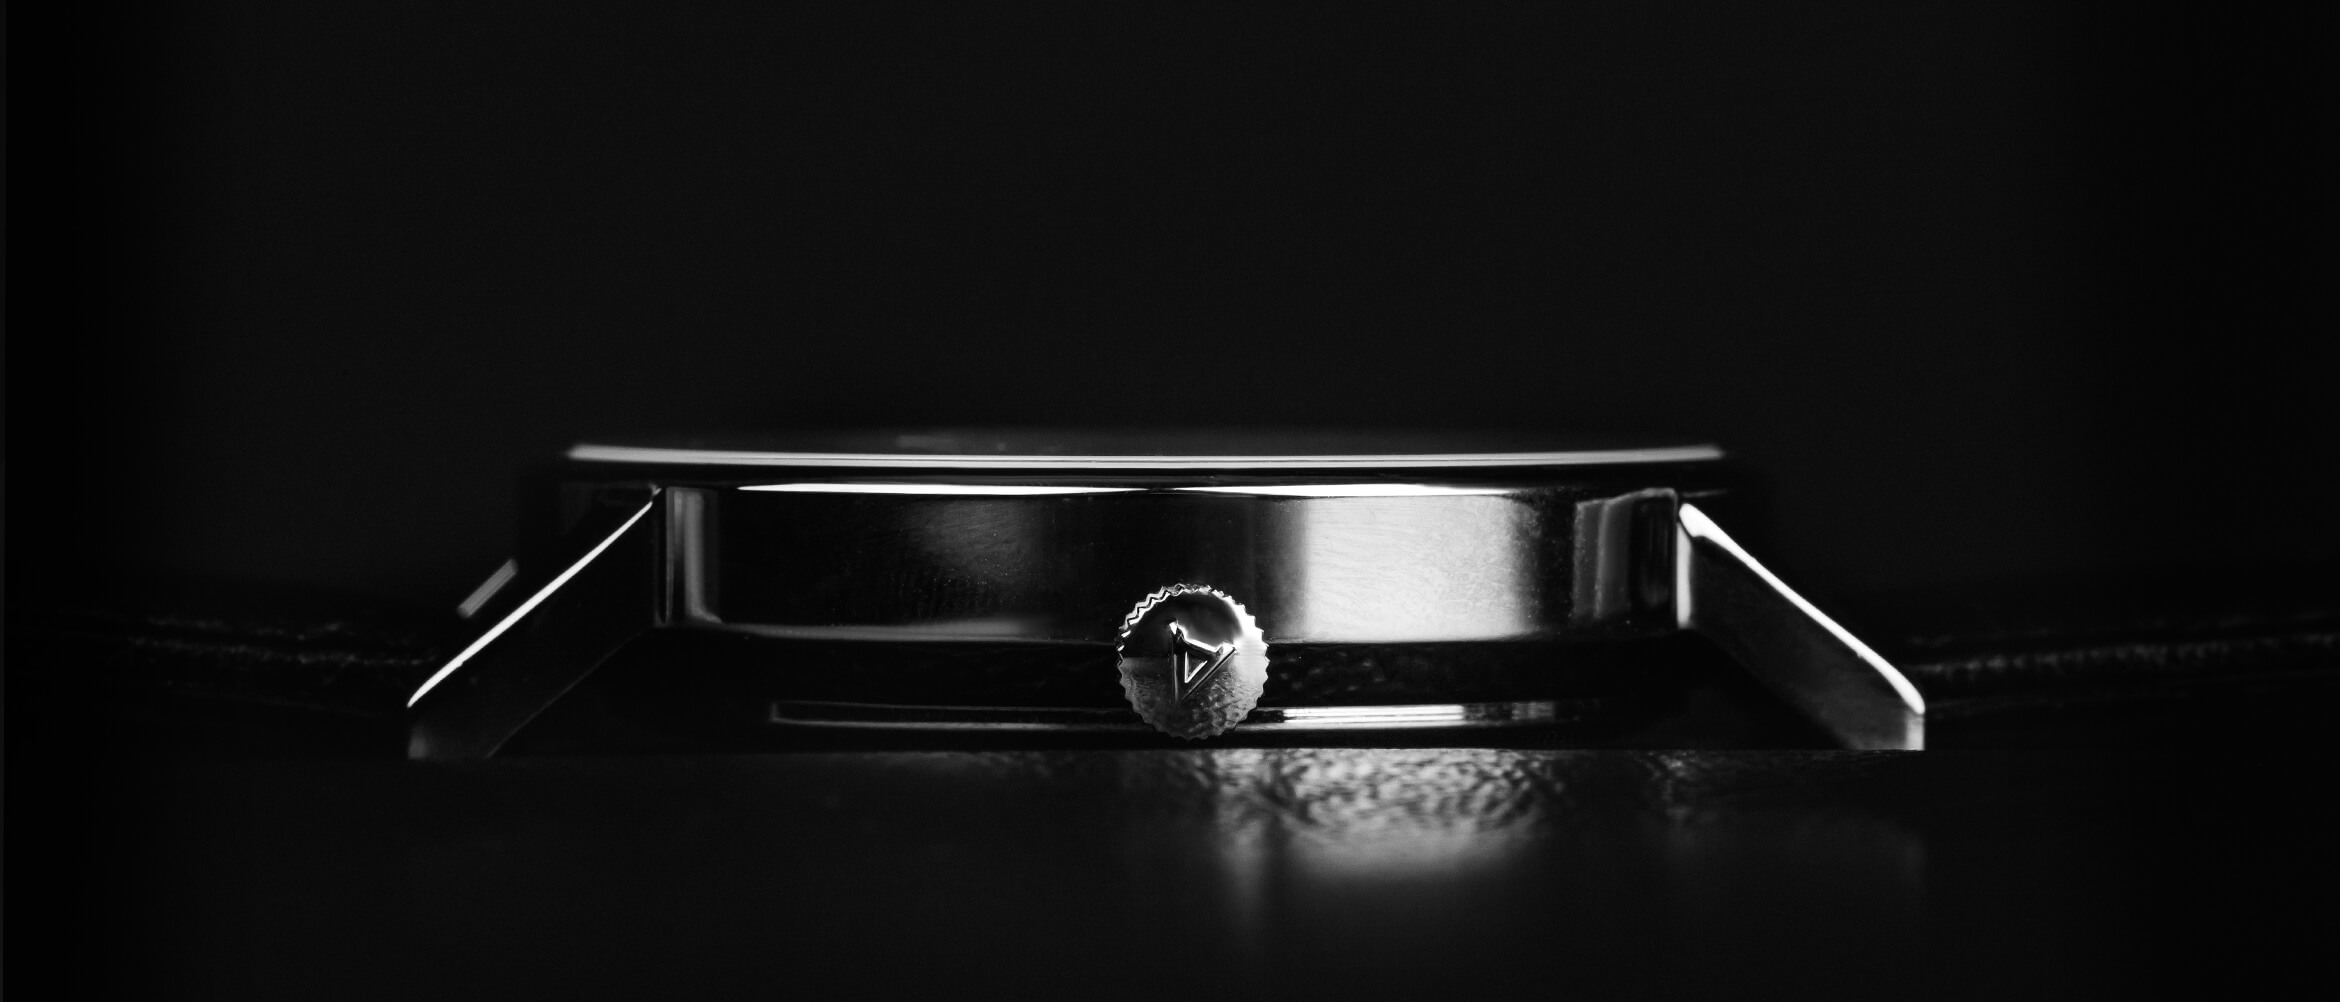 Steel Watch side View